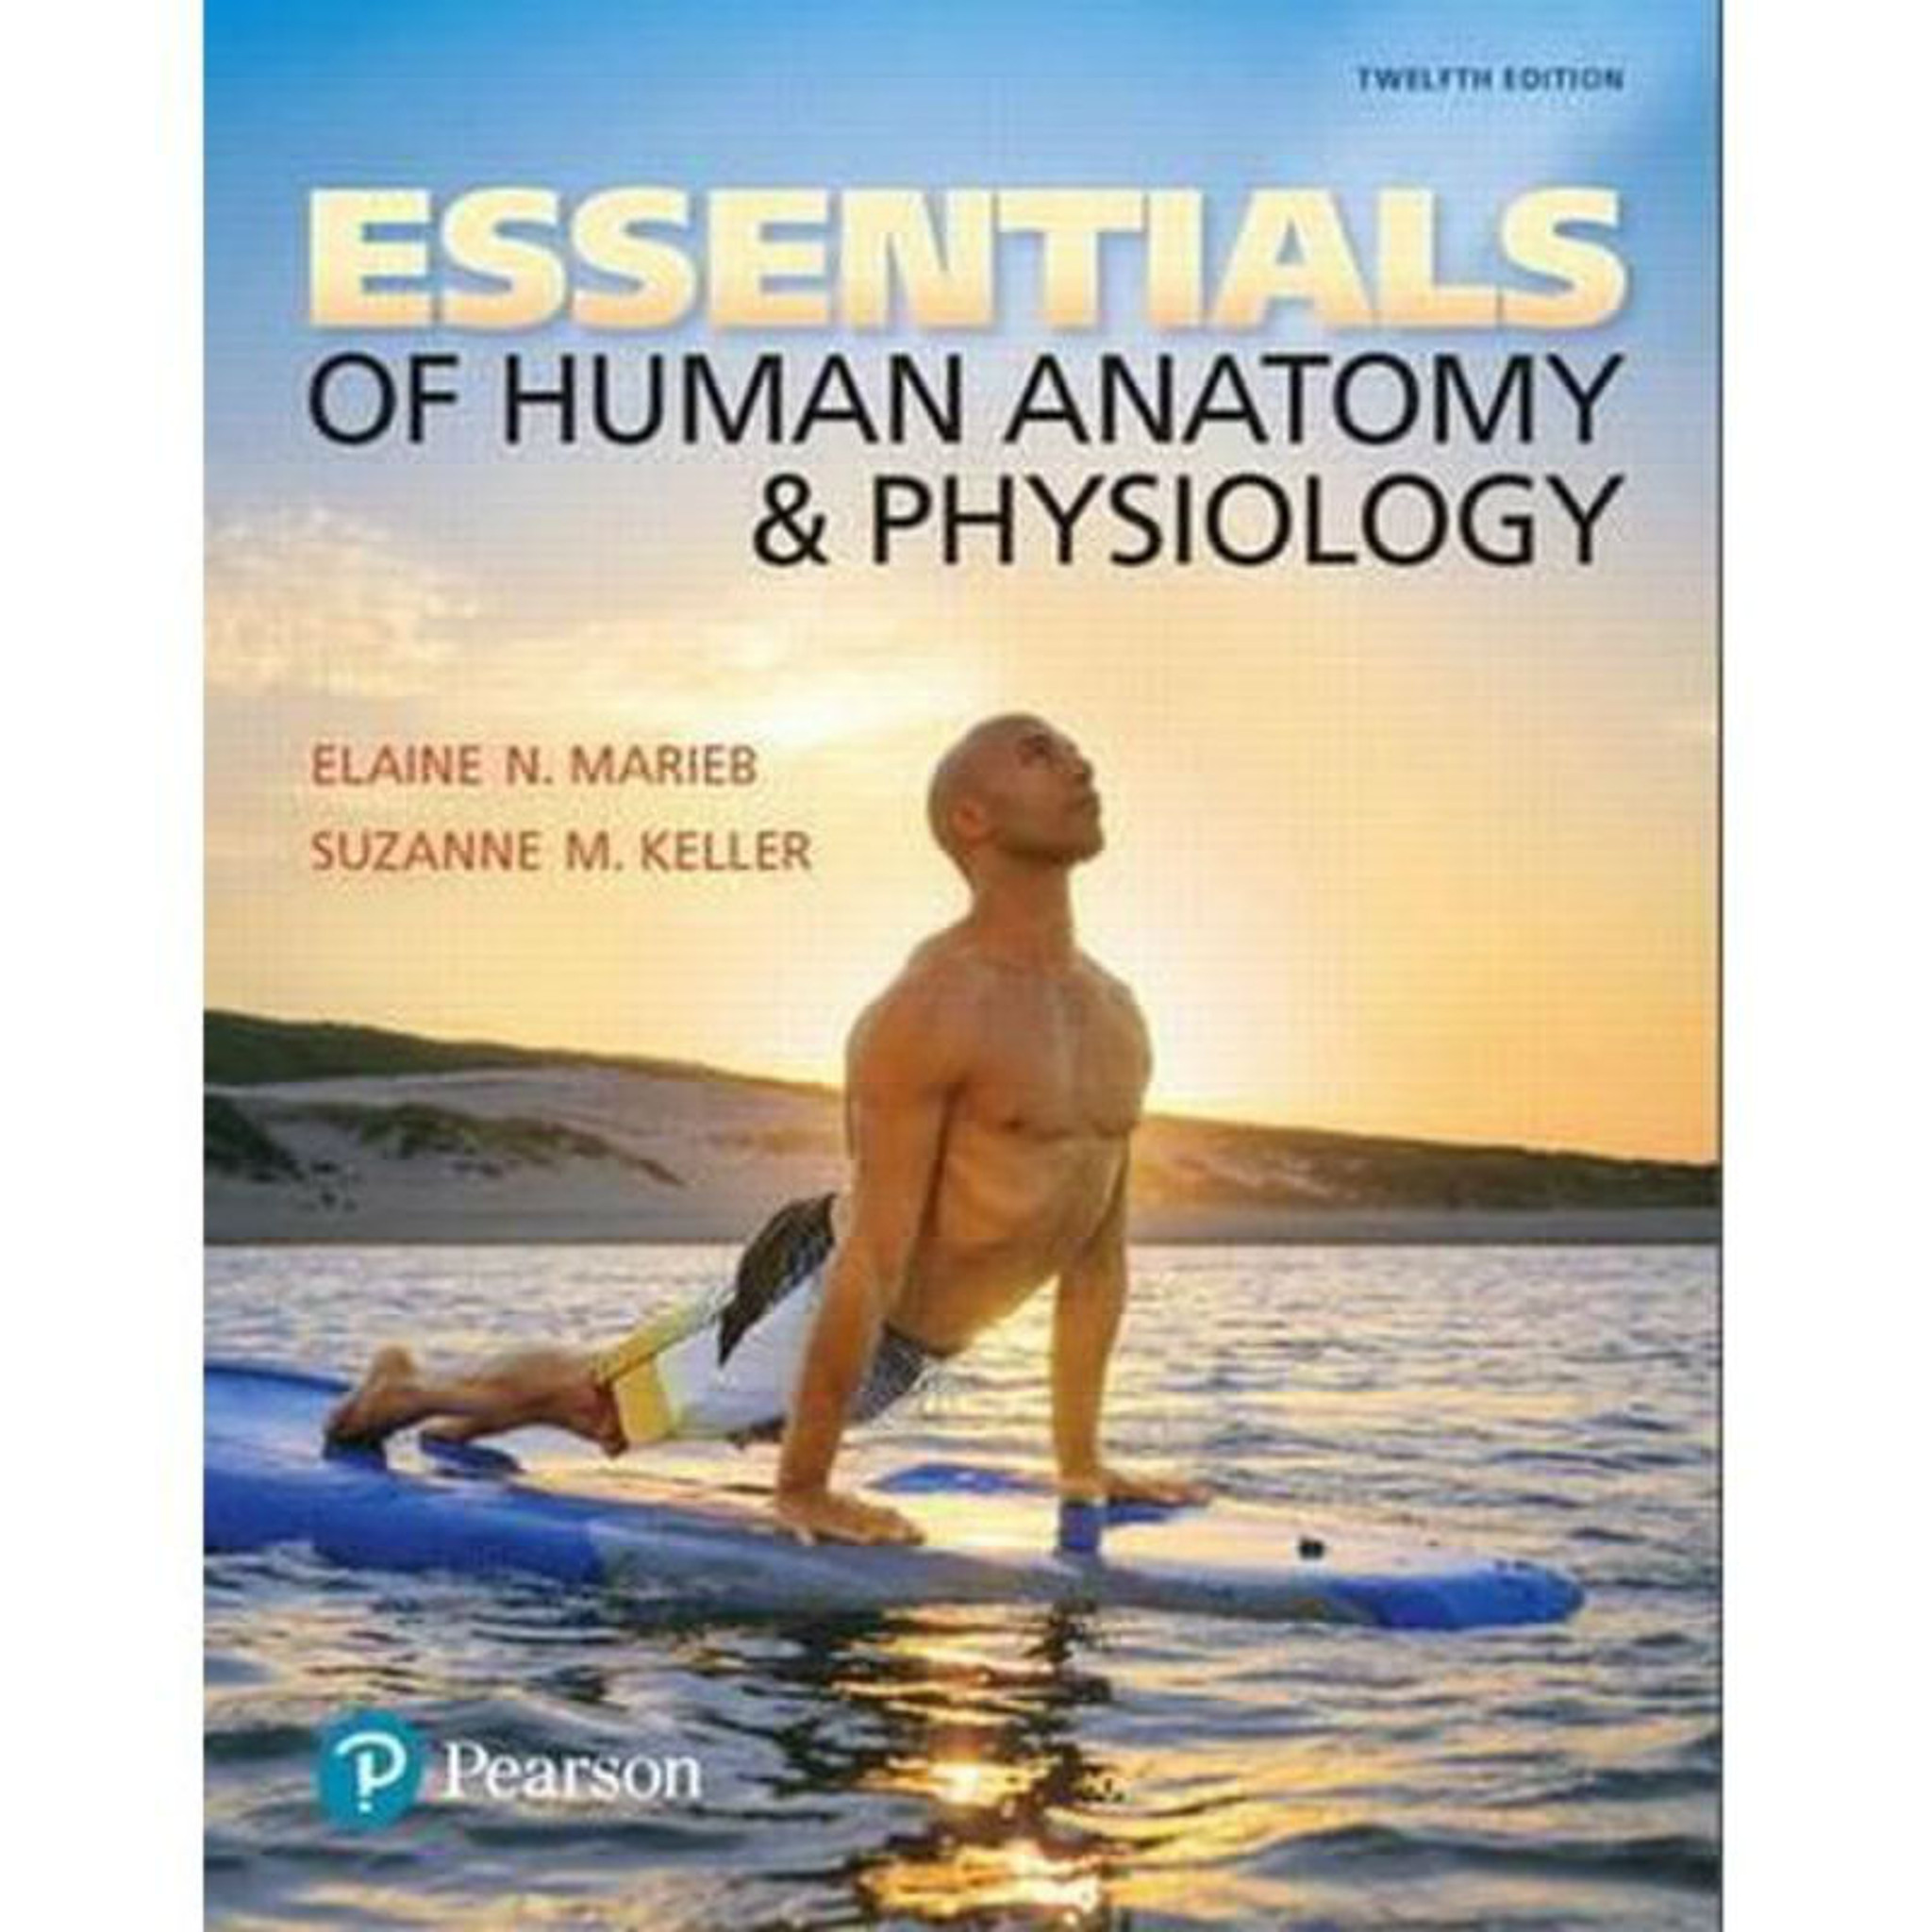 Essentials of Human Anatomy & Physiology (12th Edition) Elaine N  Marieb  and Suzanne M  Keller